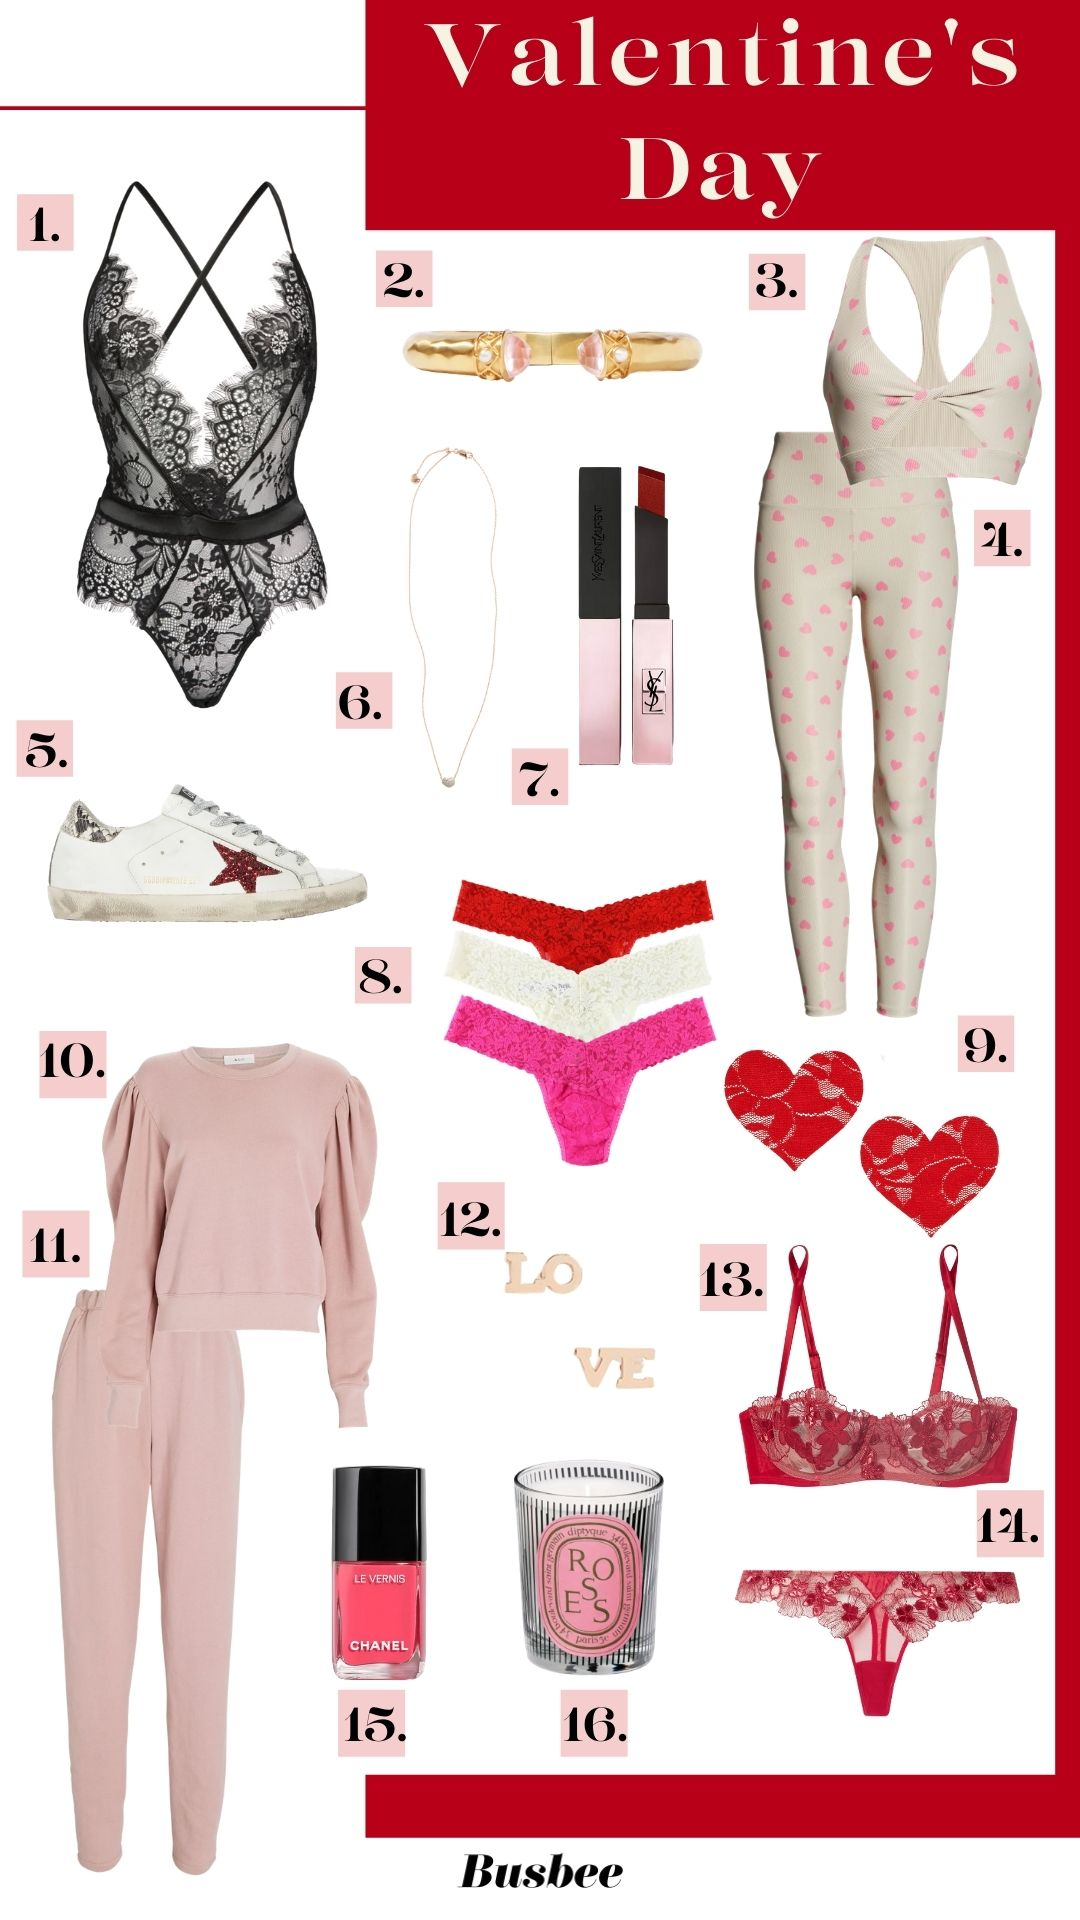 Valentine's Day Ideas, Erin Busbee of Busbee sharing what to wear, what to gift, and more!